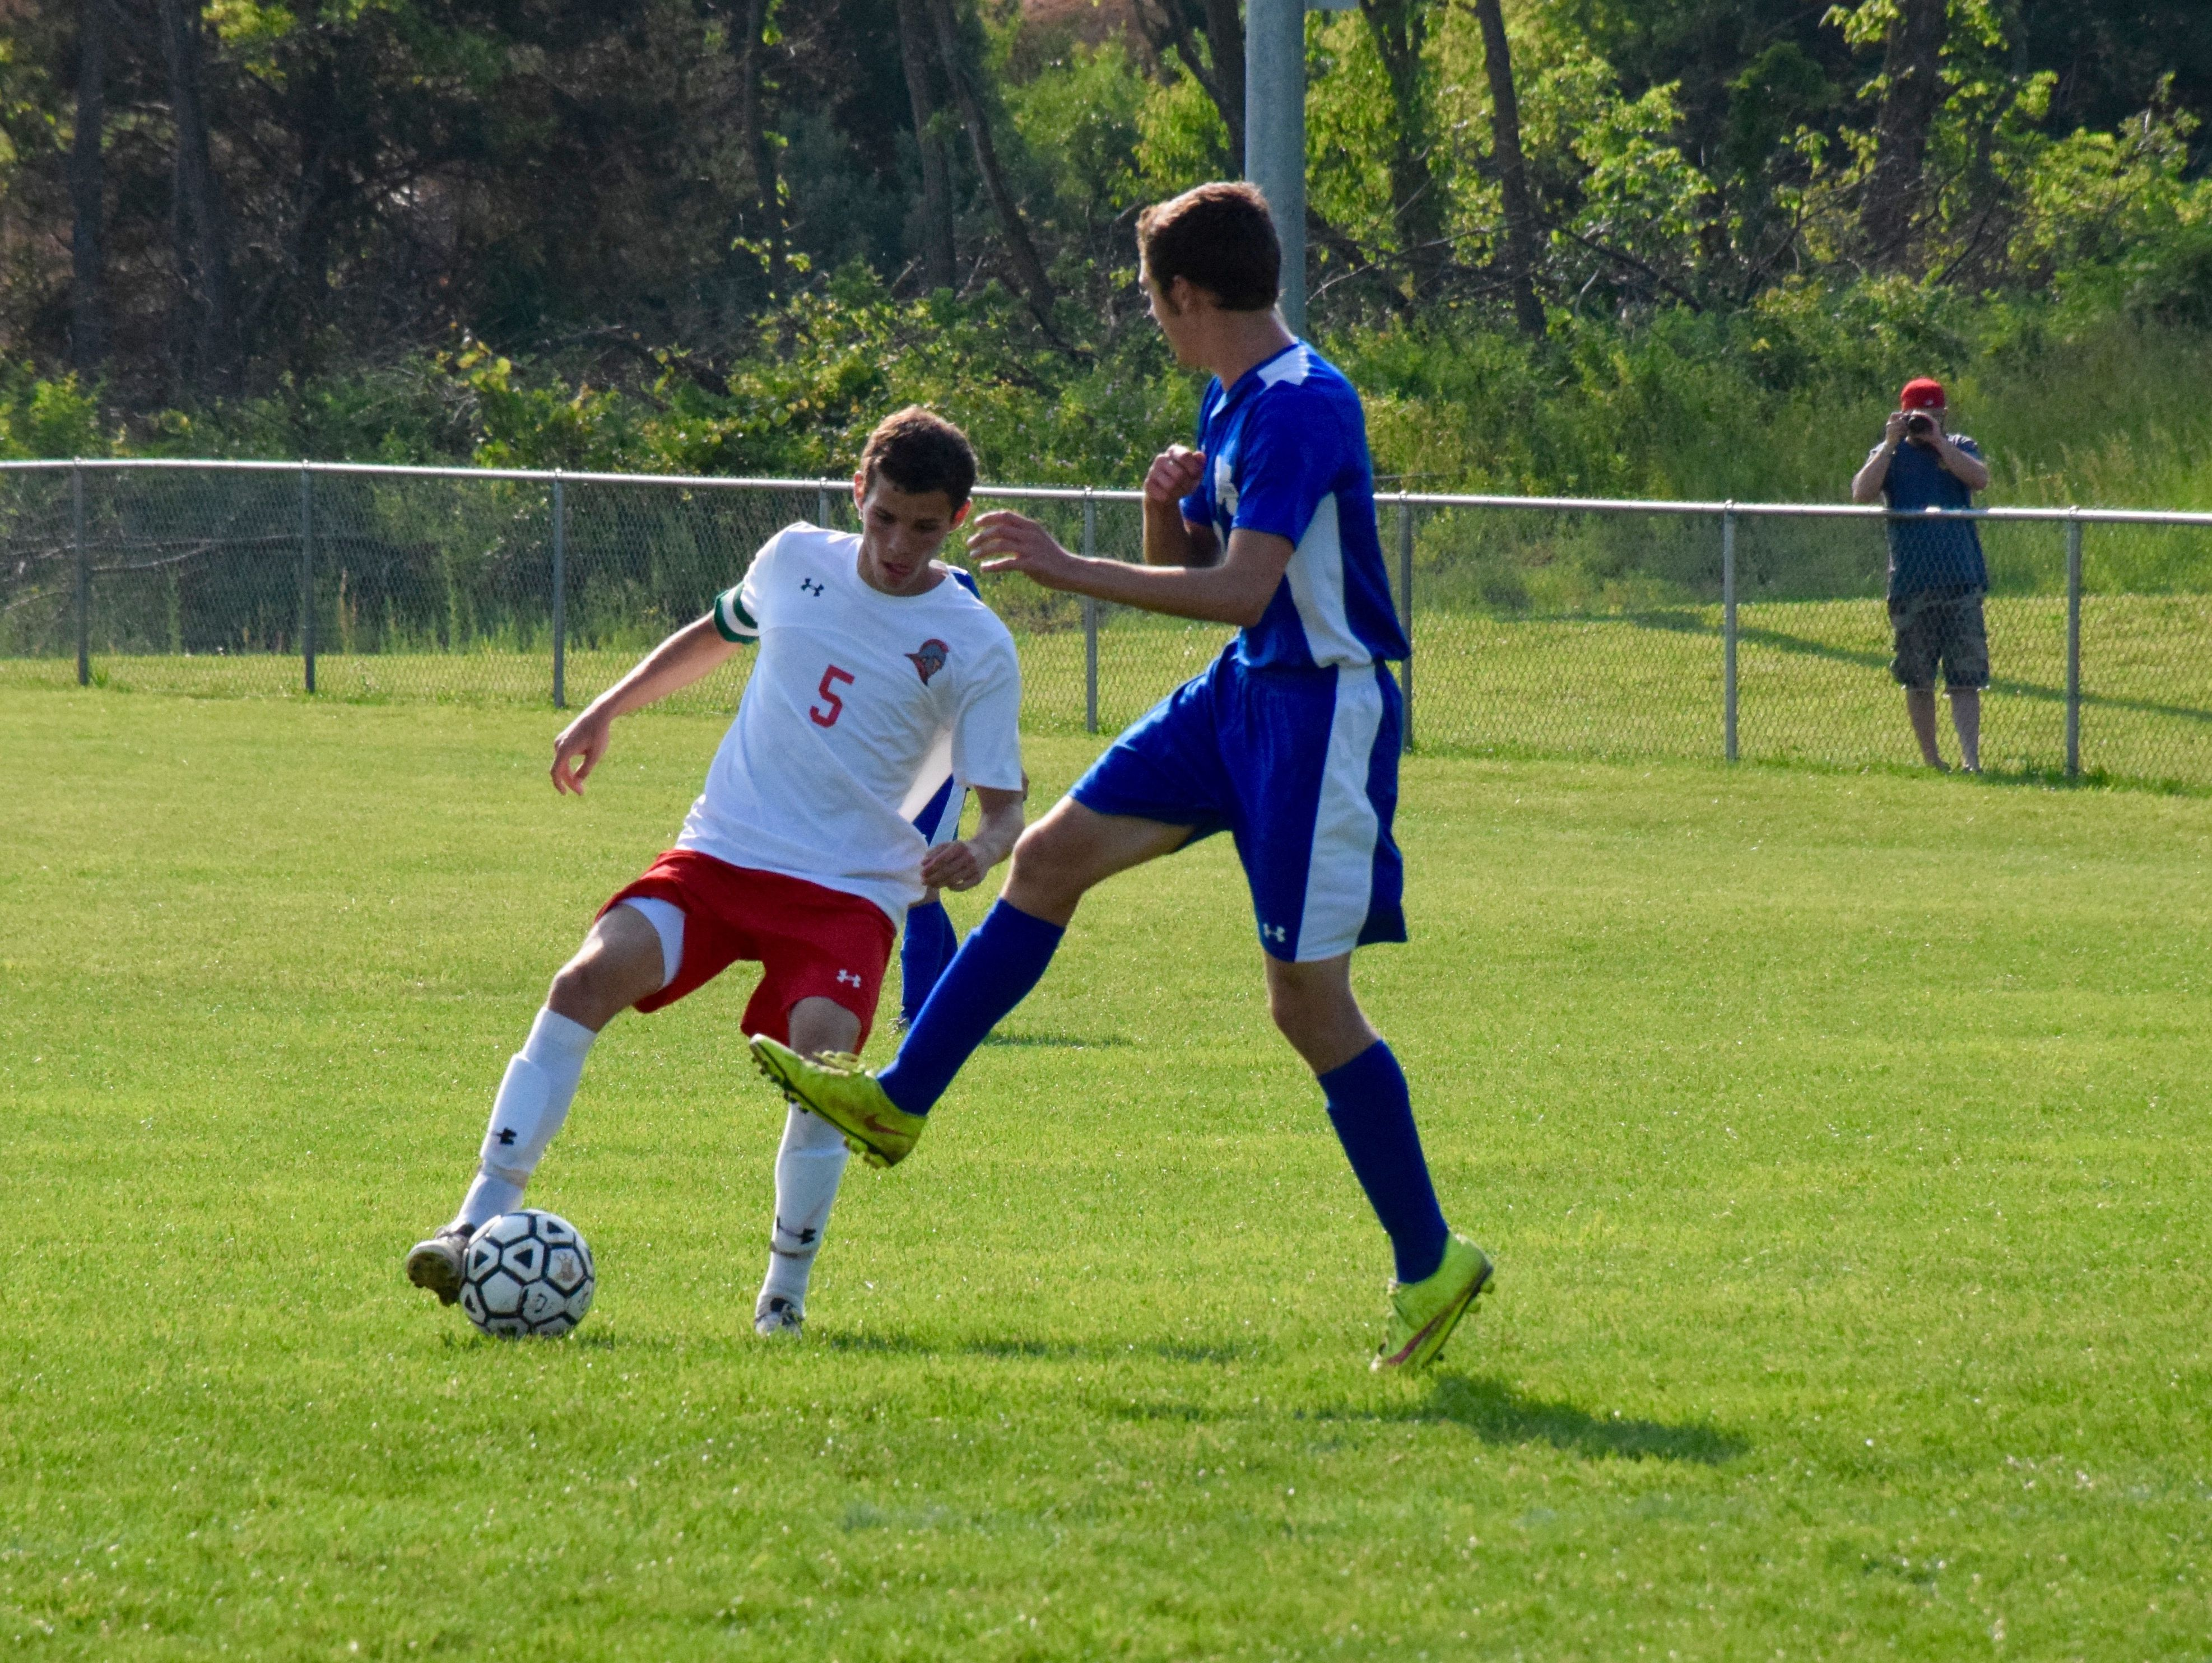 Riverheads' Elijah Knopp works for an opening in the first half of the Gladiators' Region 1A East semifinals against Mathews on Wednesday, June 1, 2016, at Riverheads High School in Greenville.